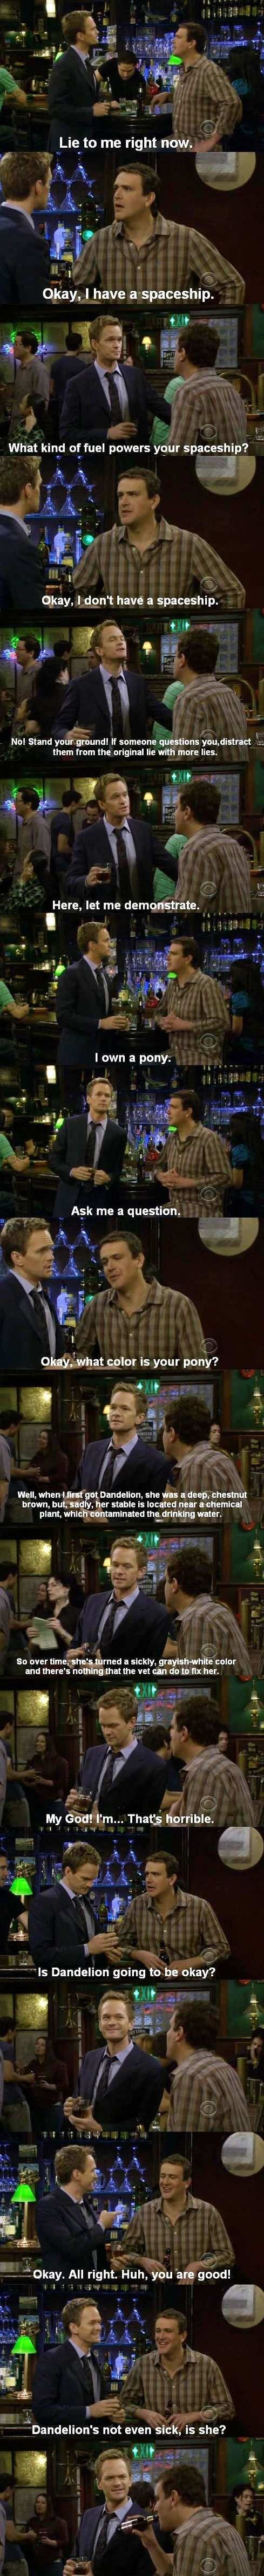 how to lie funny jokes how i met your mother